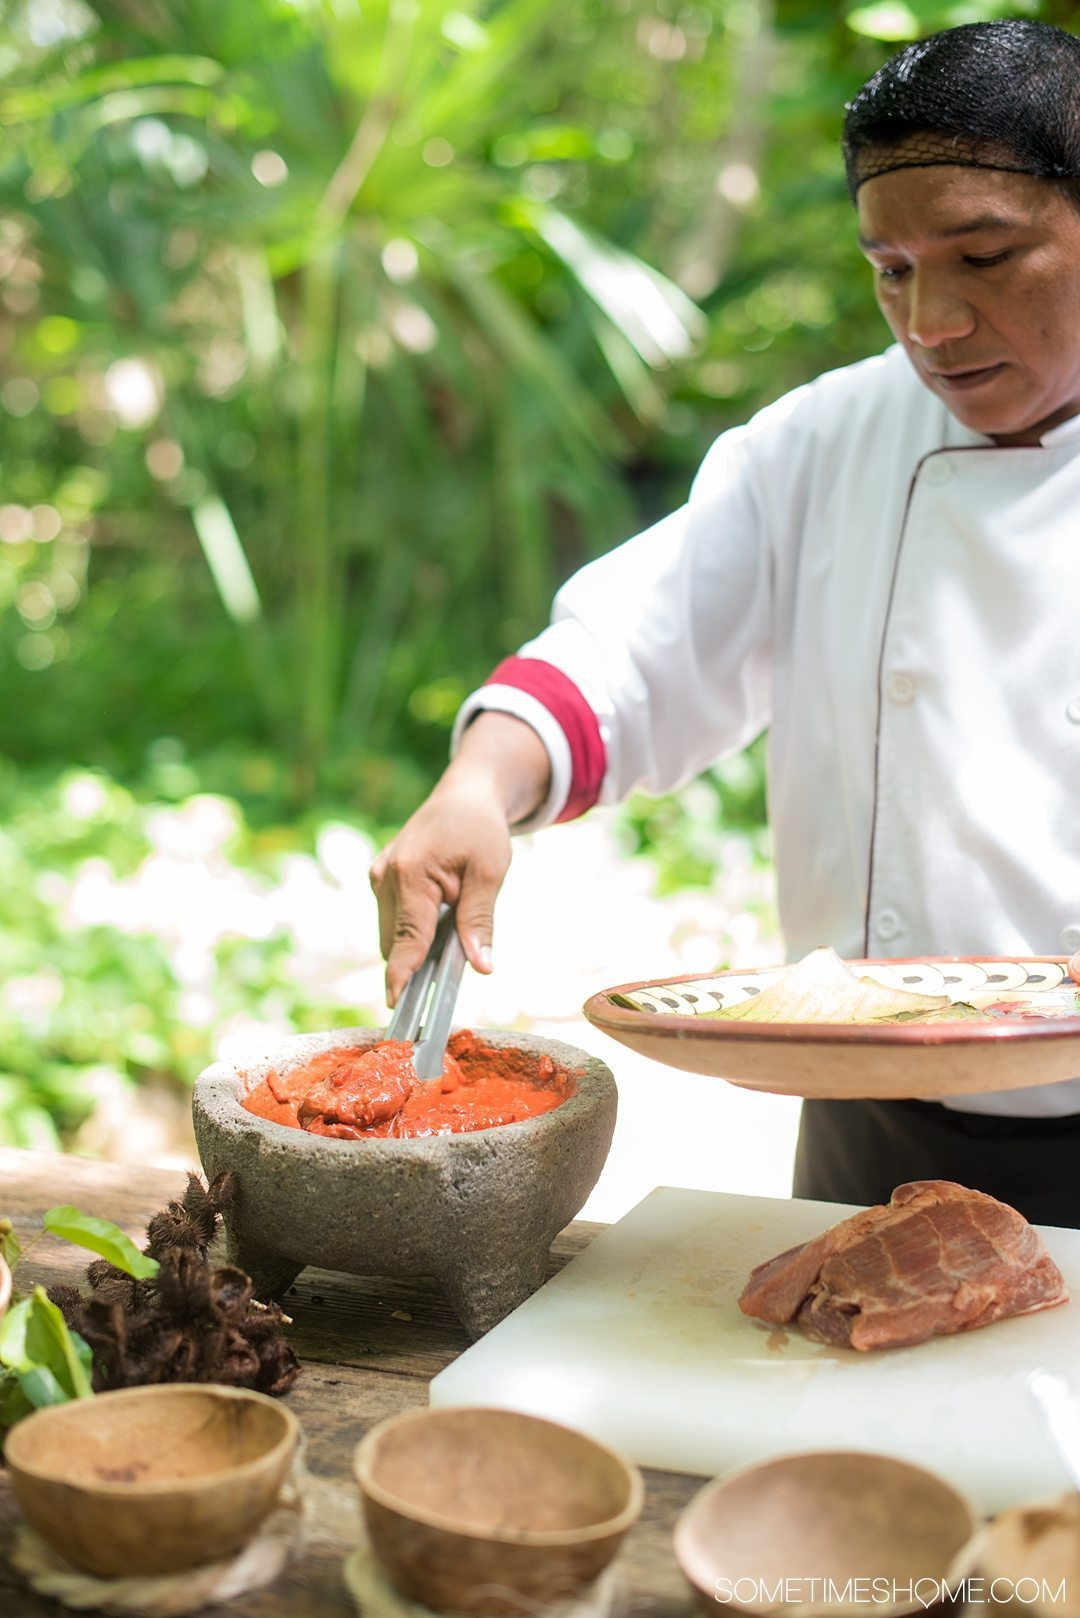 6 Unique Foods to Try in the Yucatan Peninsula on Sometimes Home travel blog. Photos of creating the marinade for Cochinita Pibil with annatto seeds.